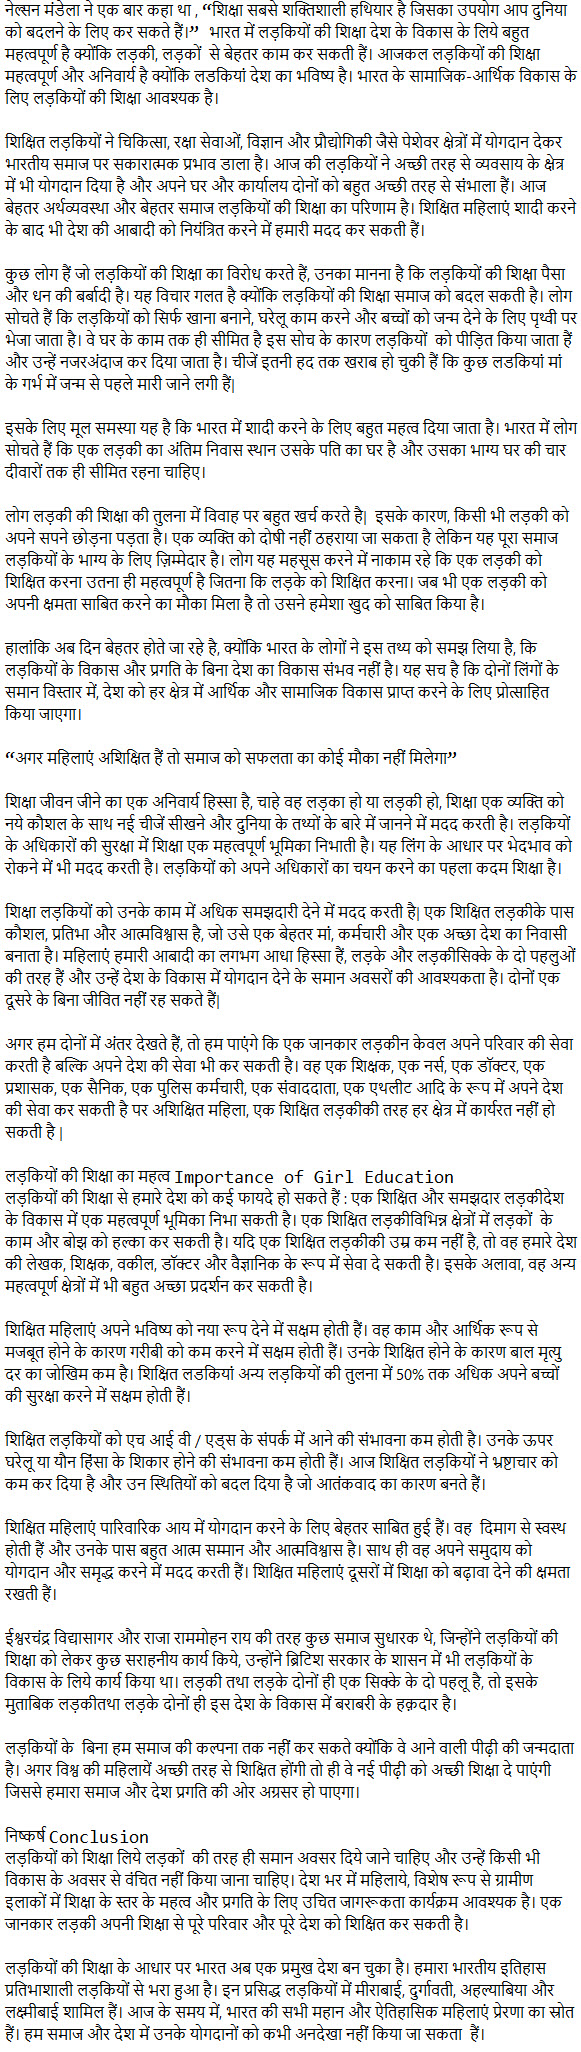 Short essay about education